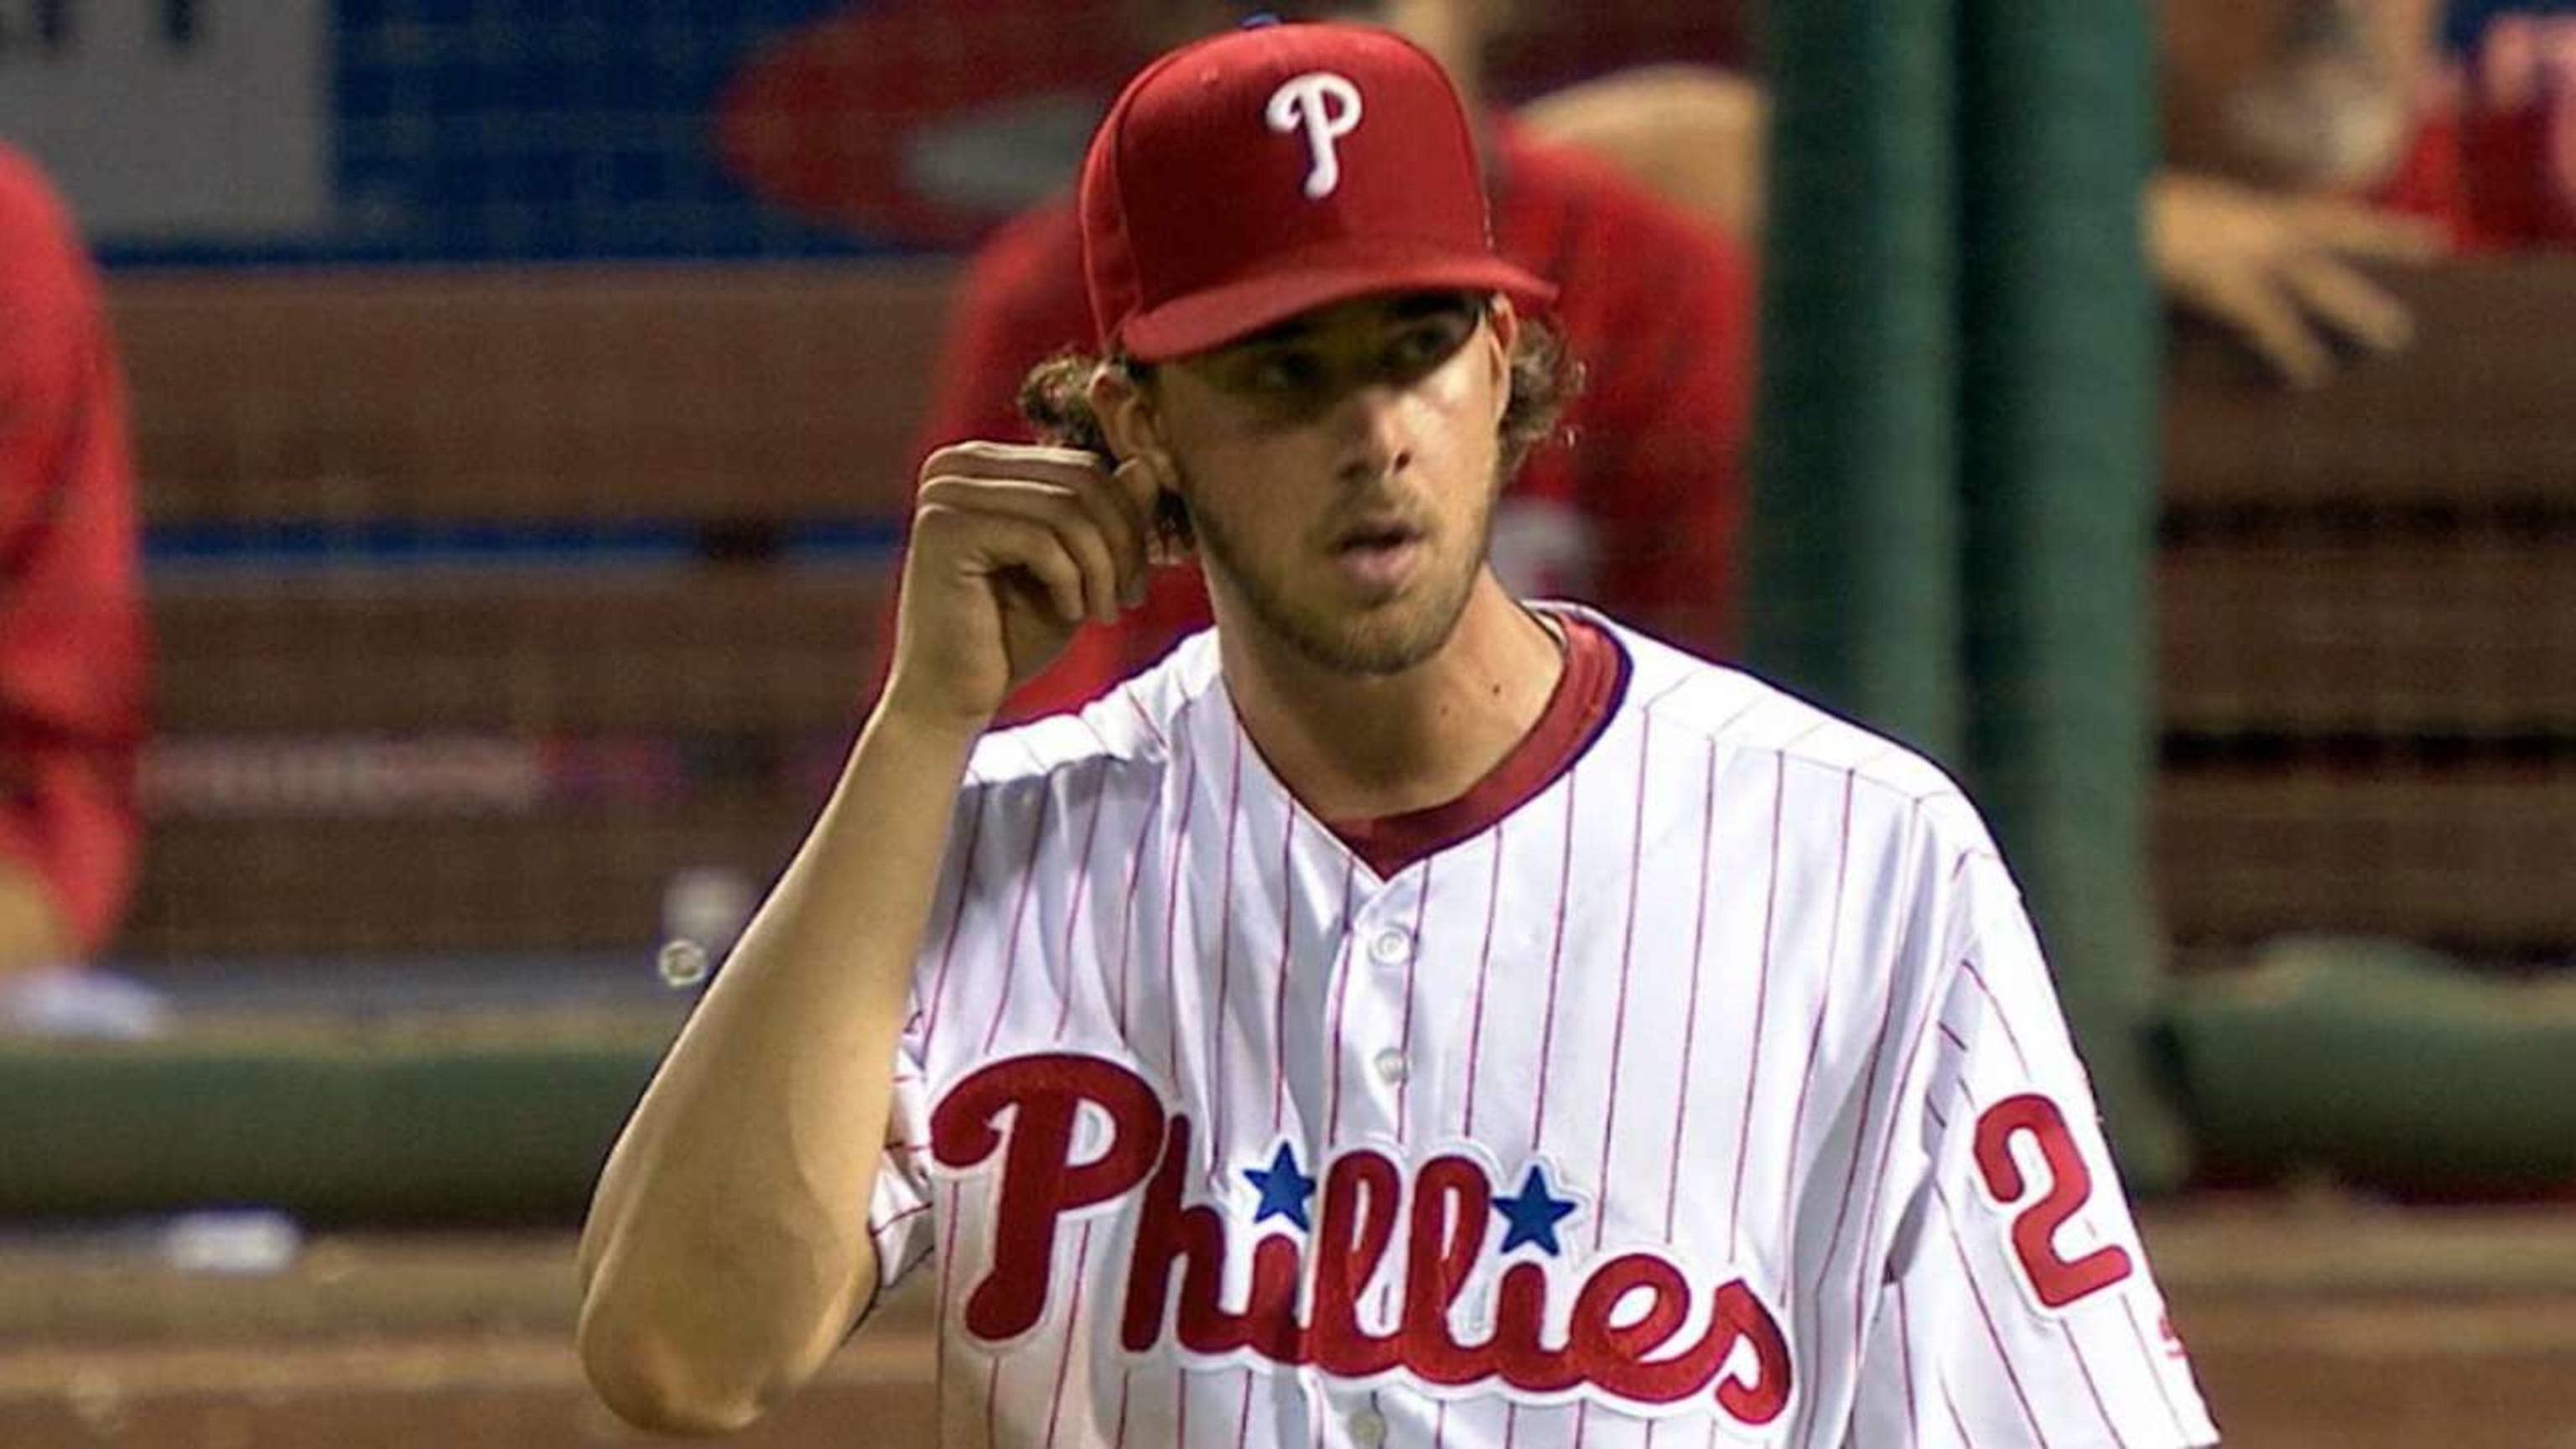 Aaron Nola racks up strikeouts against Brewers